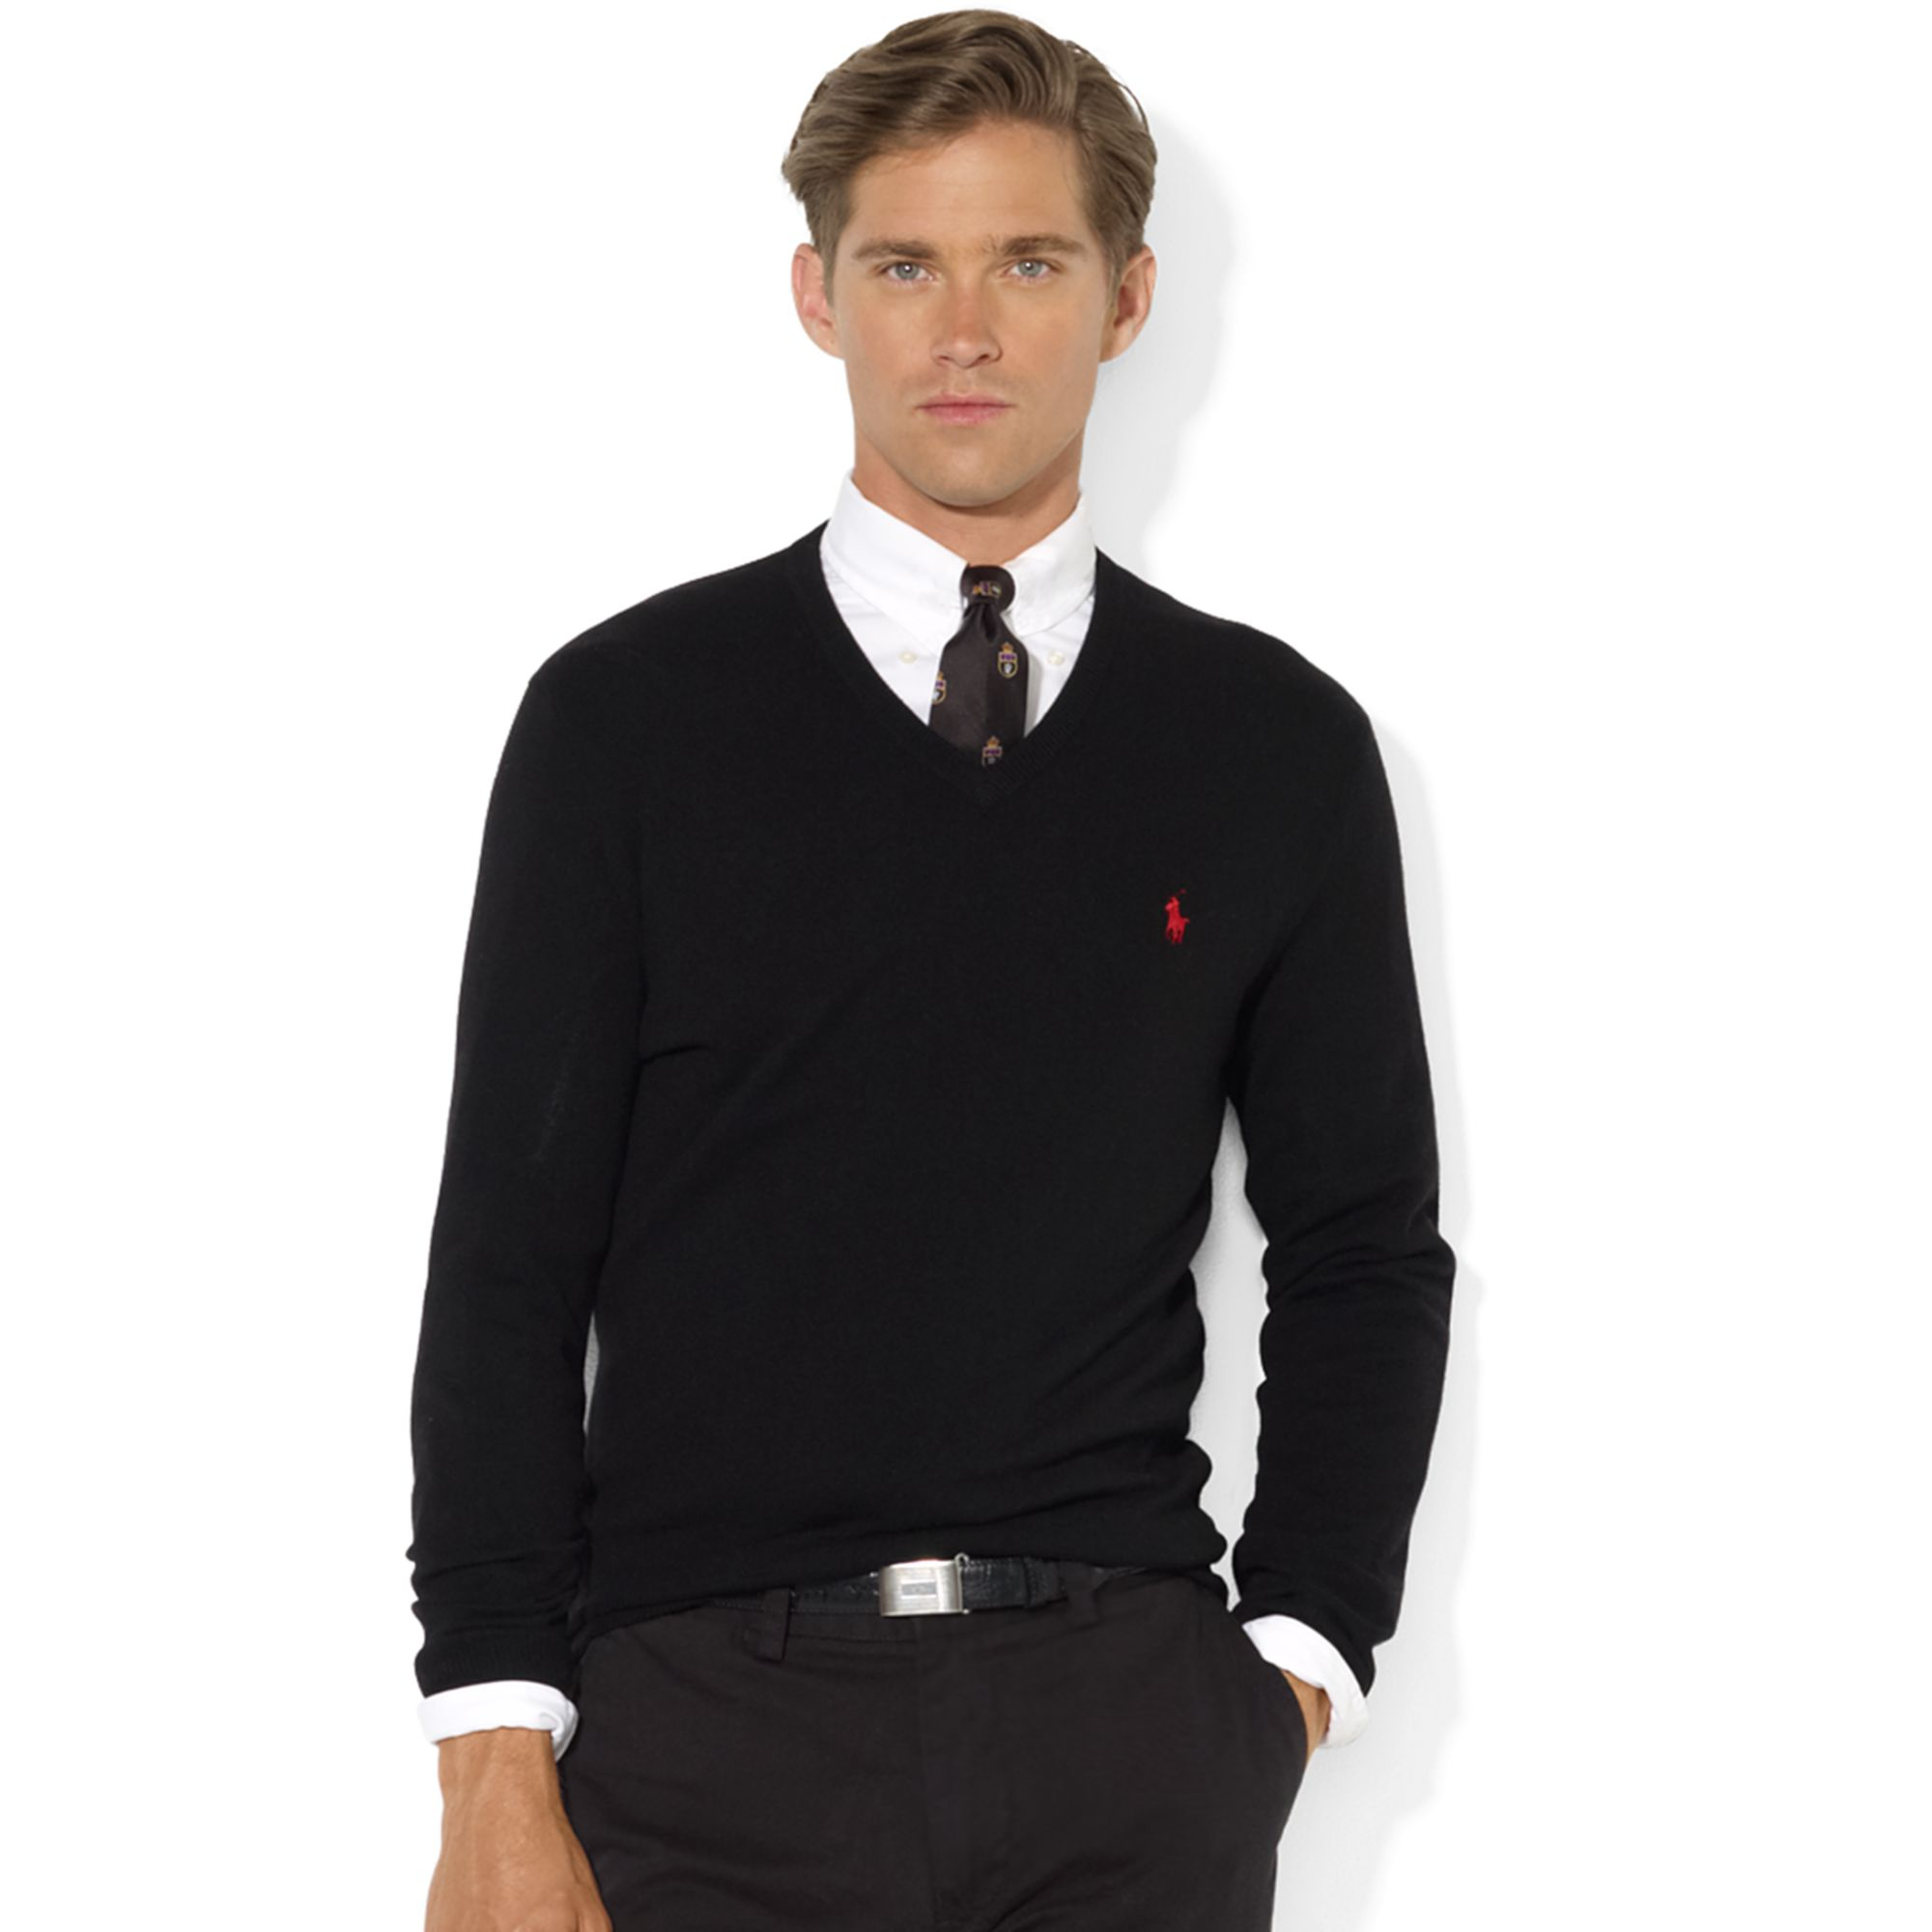 c3ae8ae8d4d13 Lyst - Ralph Lauren V-Neck Merino Wool Sweater in Black for Men